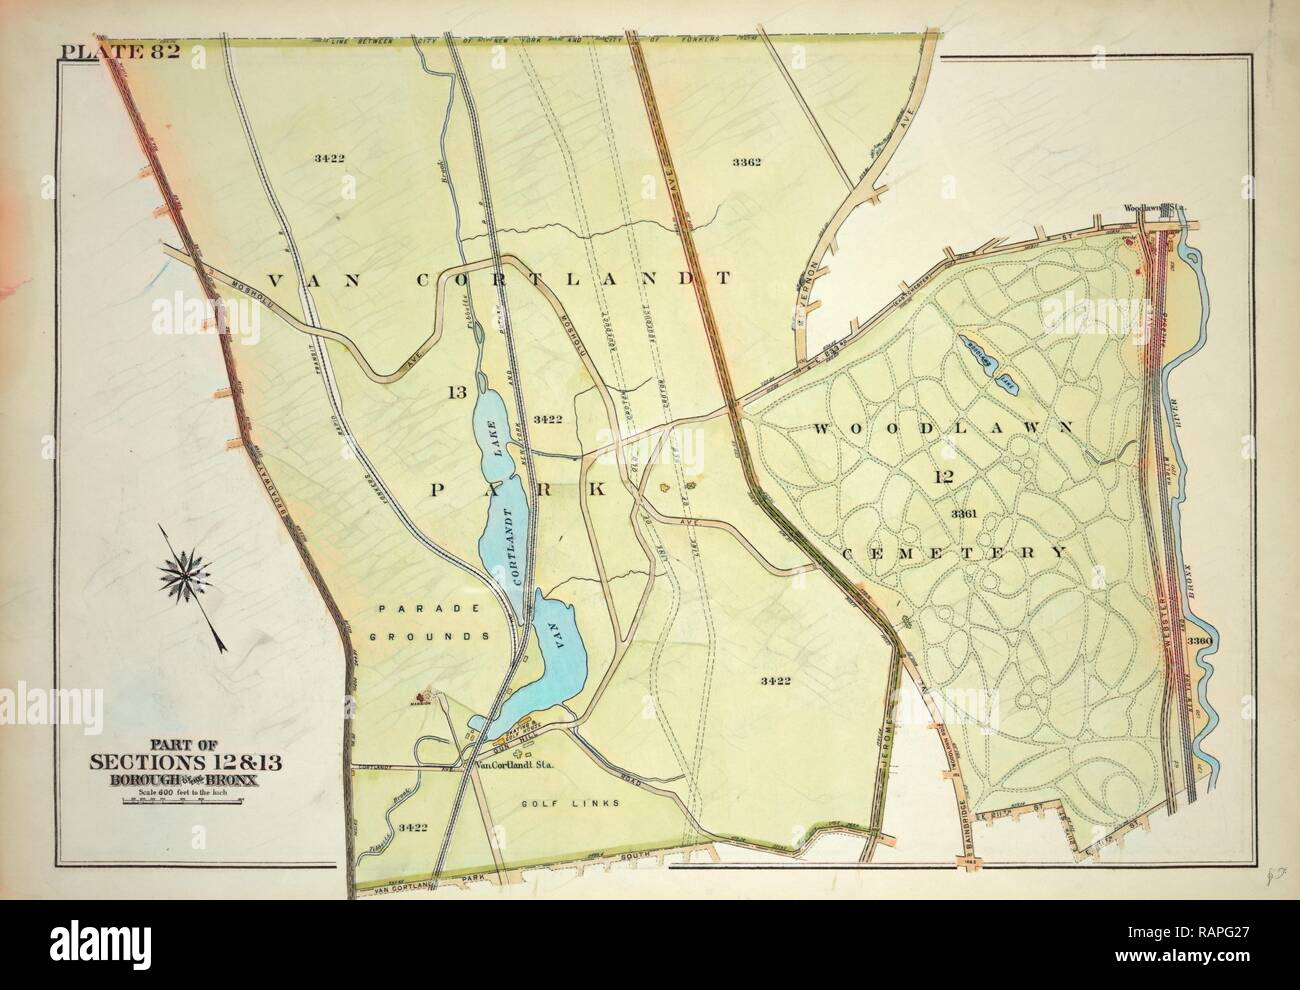 Plate 82, Part of Section 13, Borough of the Bronx. Bounded by Broadway, Van Cortlandt Park South, Gun Hill Road, E reimagined - Stock Image